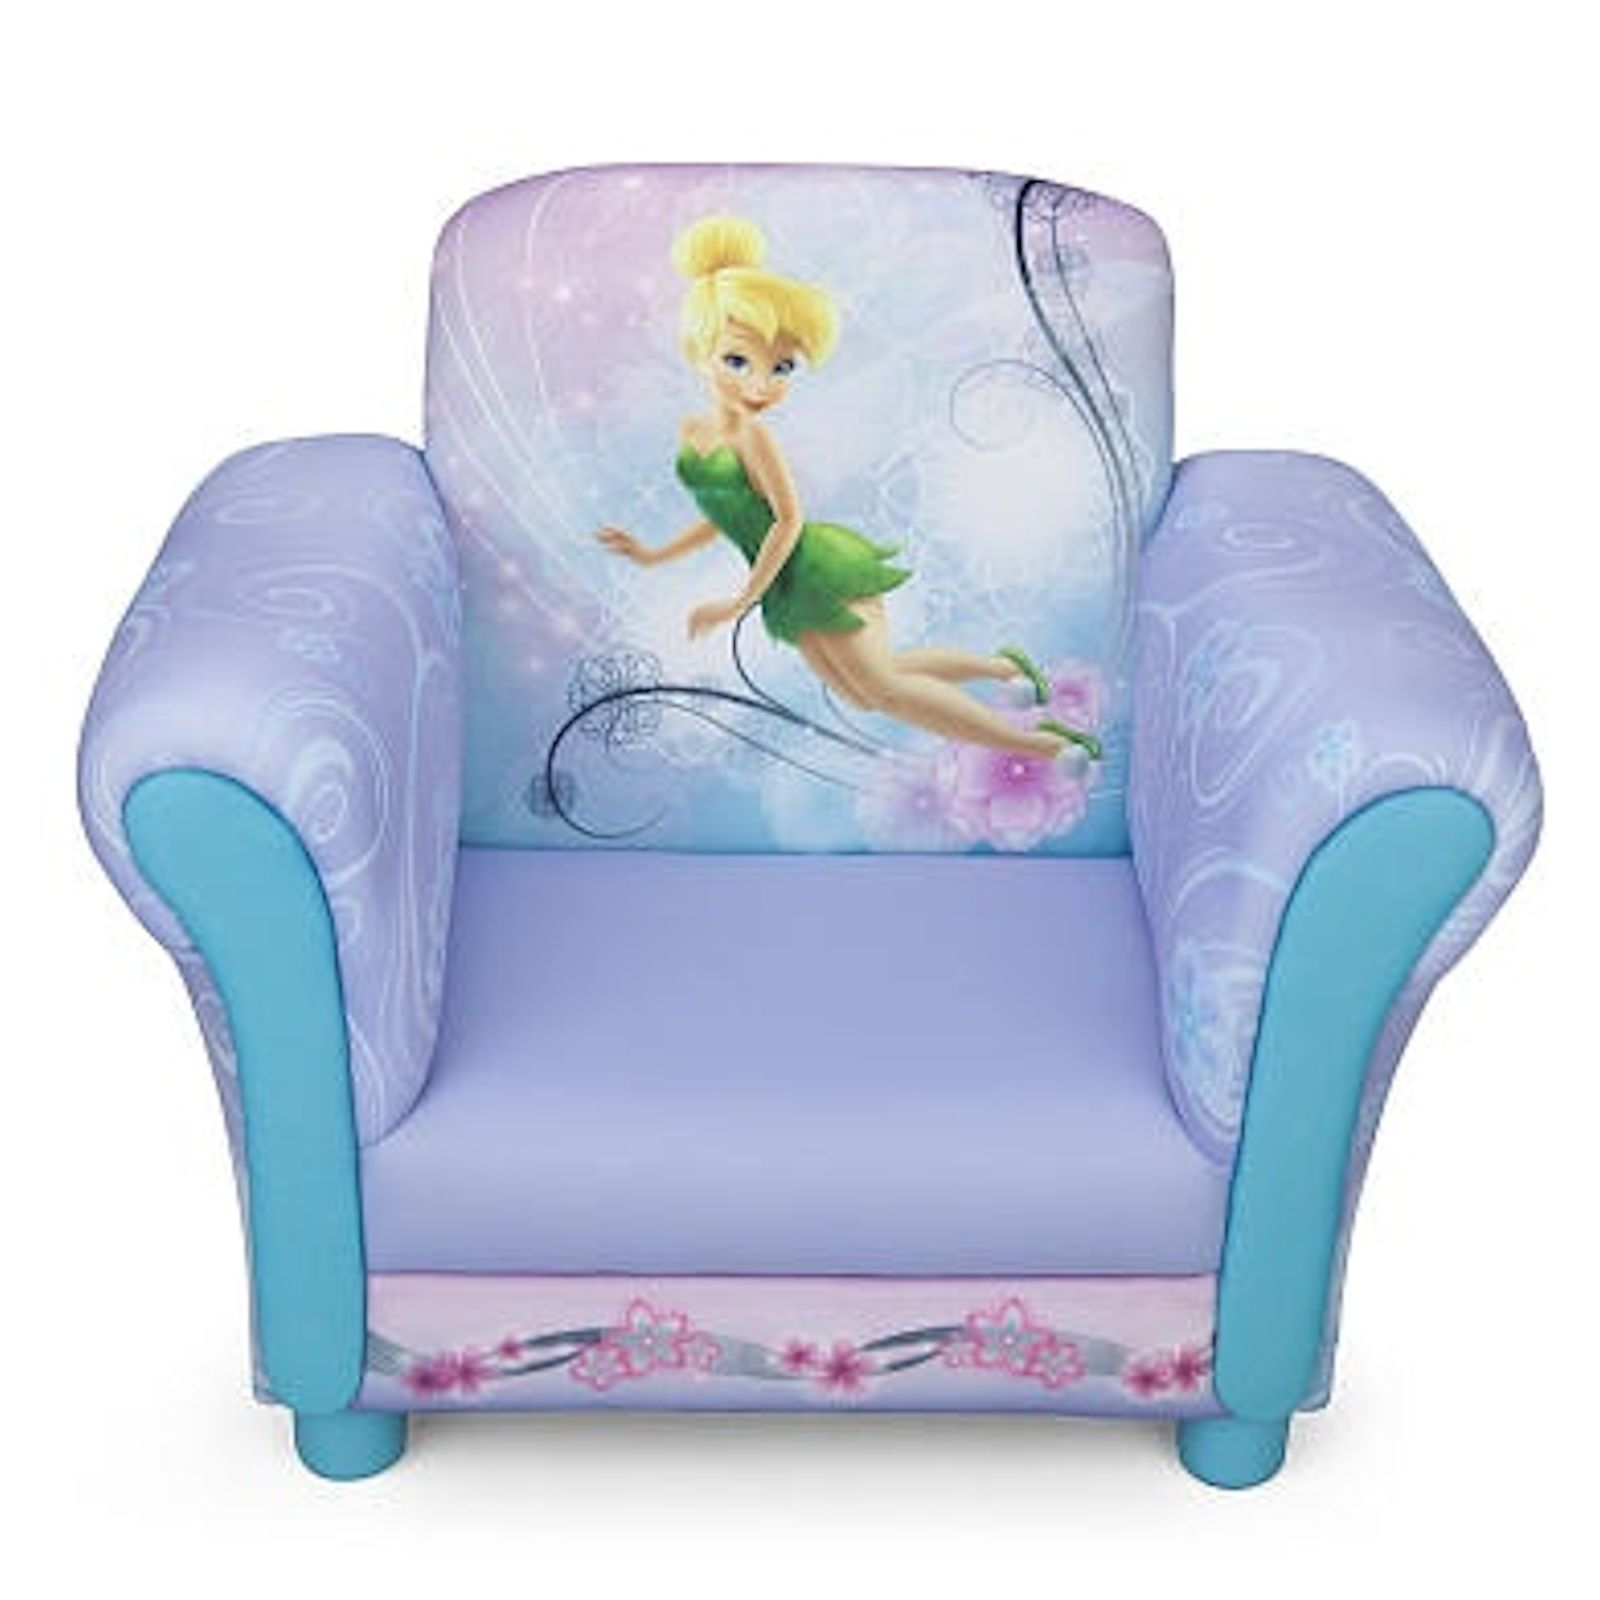 Upholstered Toddler Chair New Delta Children Disney Fairies Pink Upholstered Chair